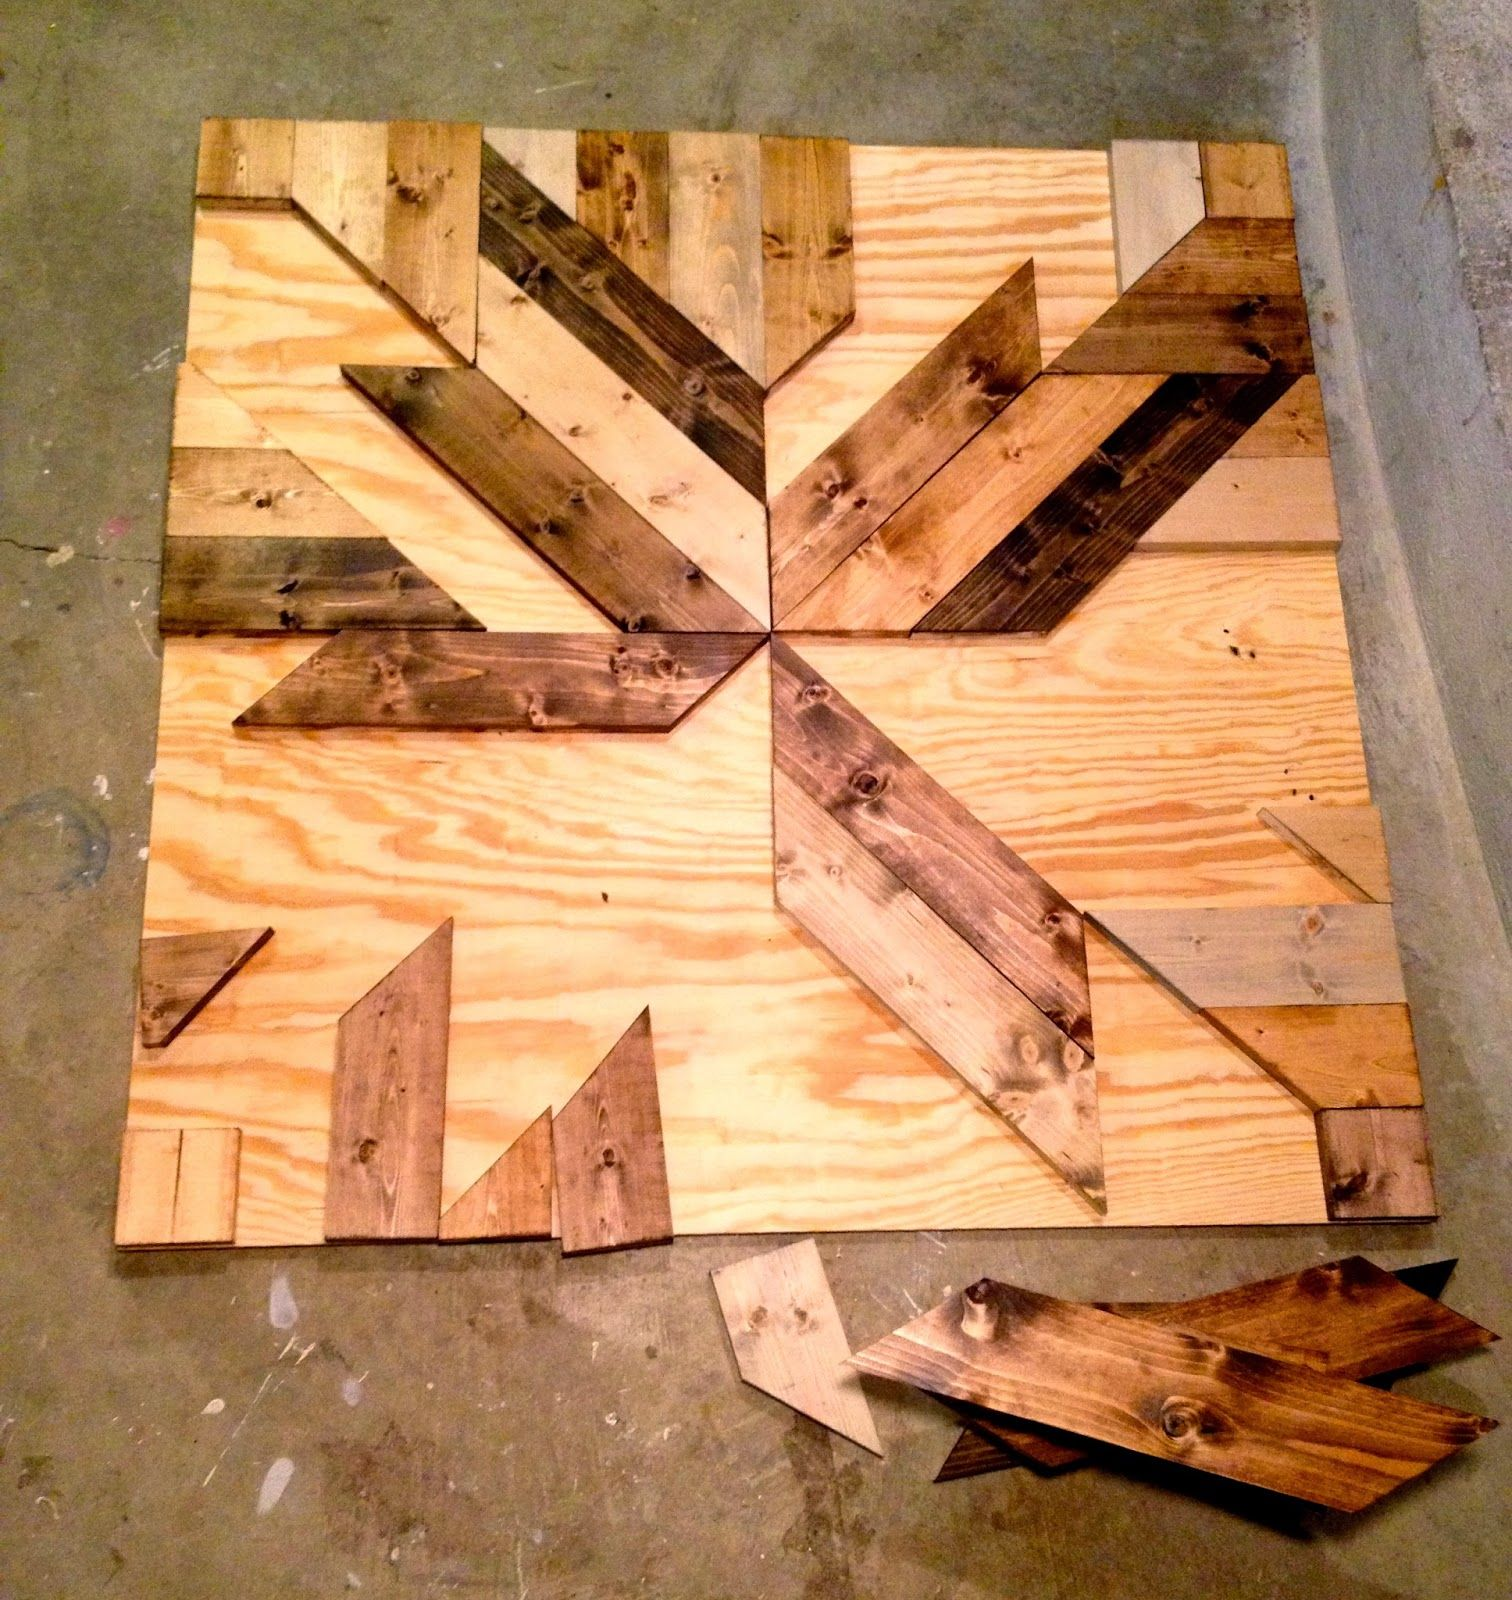 Build Diy Wood Planked Quilt Wall Art Make This Decor Using Pine Boards Glue And Various Stains It Makes A Great Statement Combines Two Of My